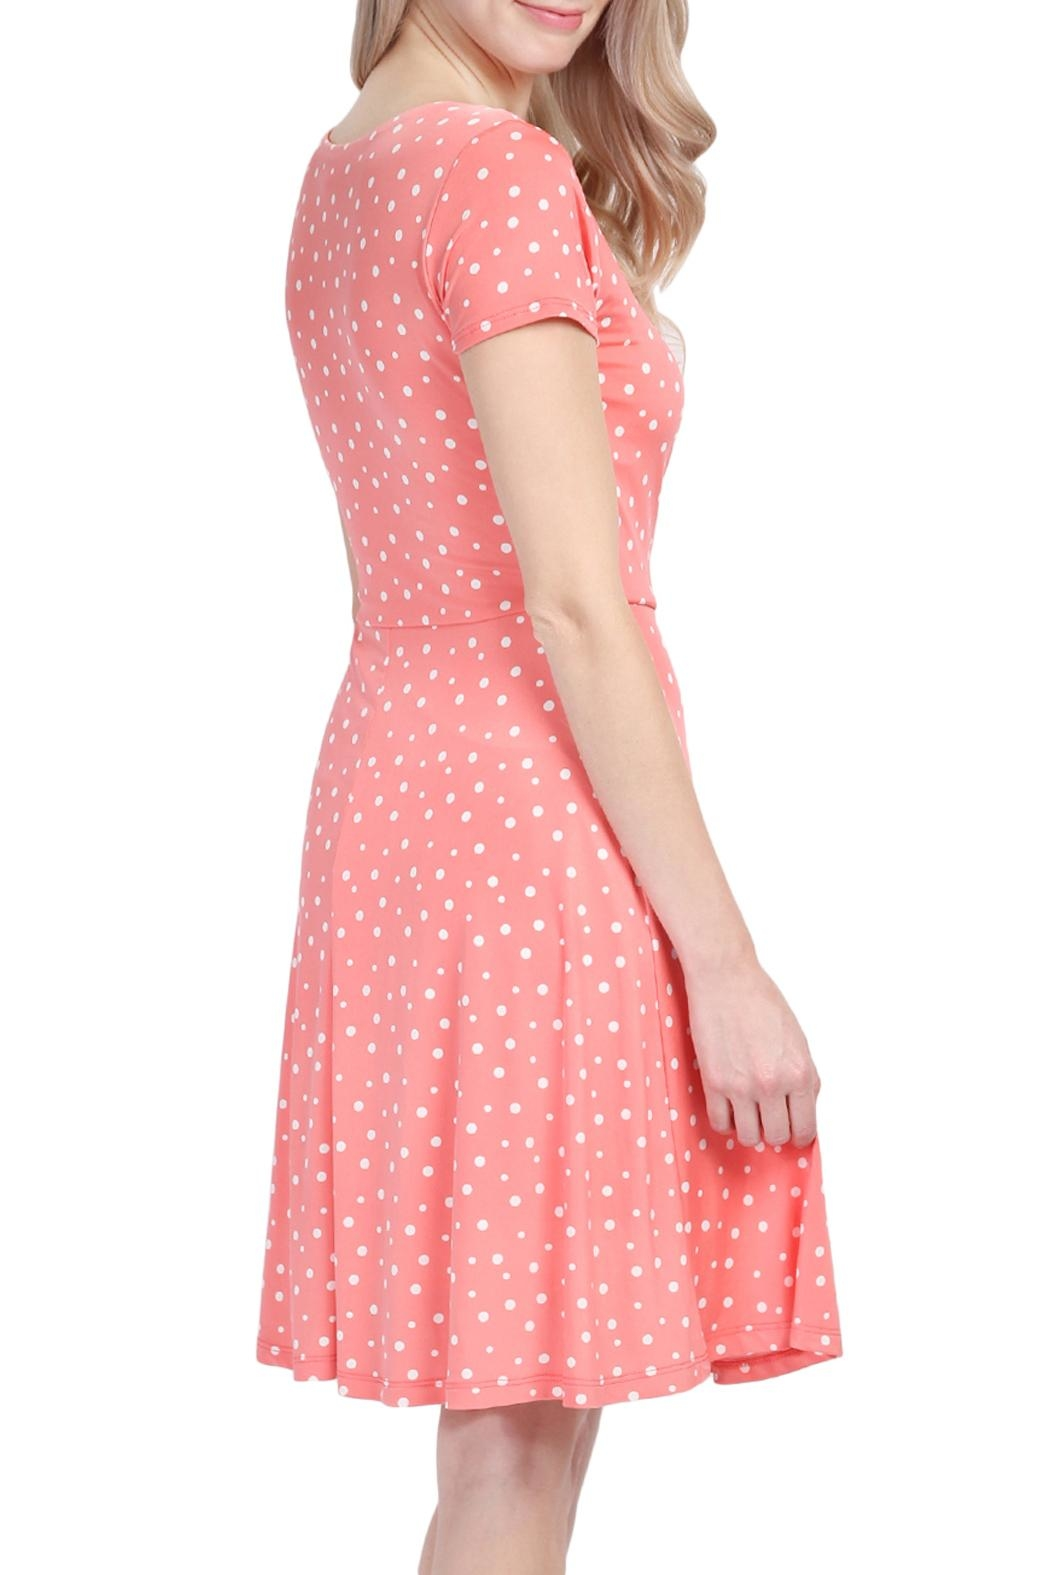 Riah Fashion Polka Dot Dress - Front Full Image